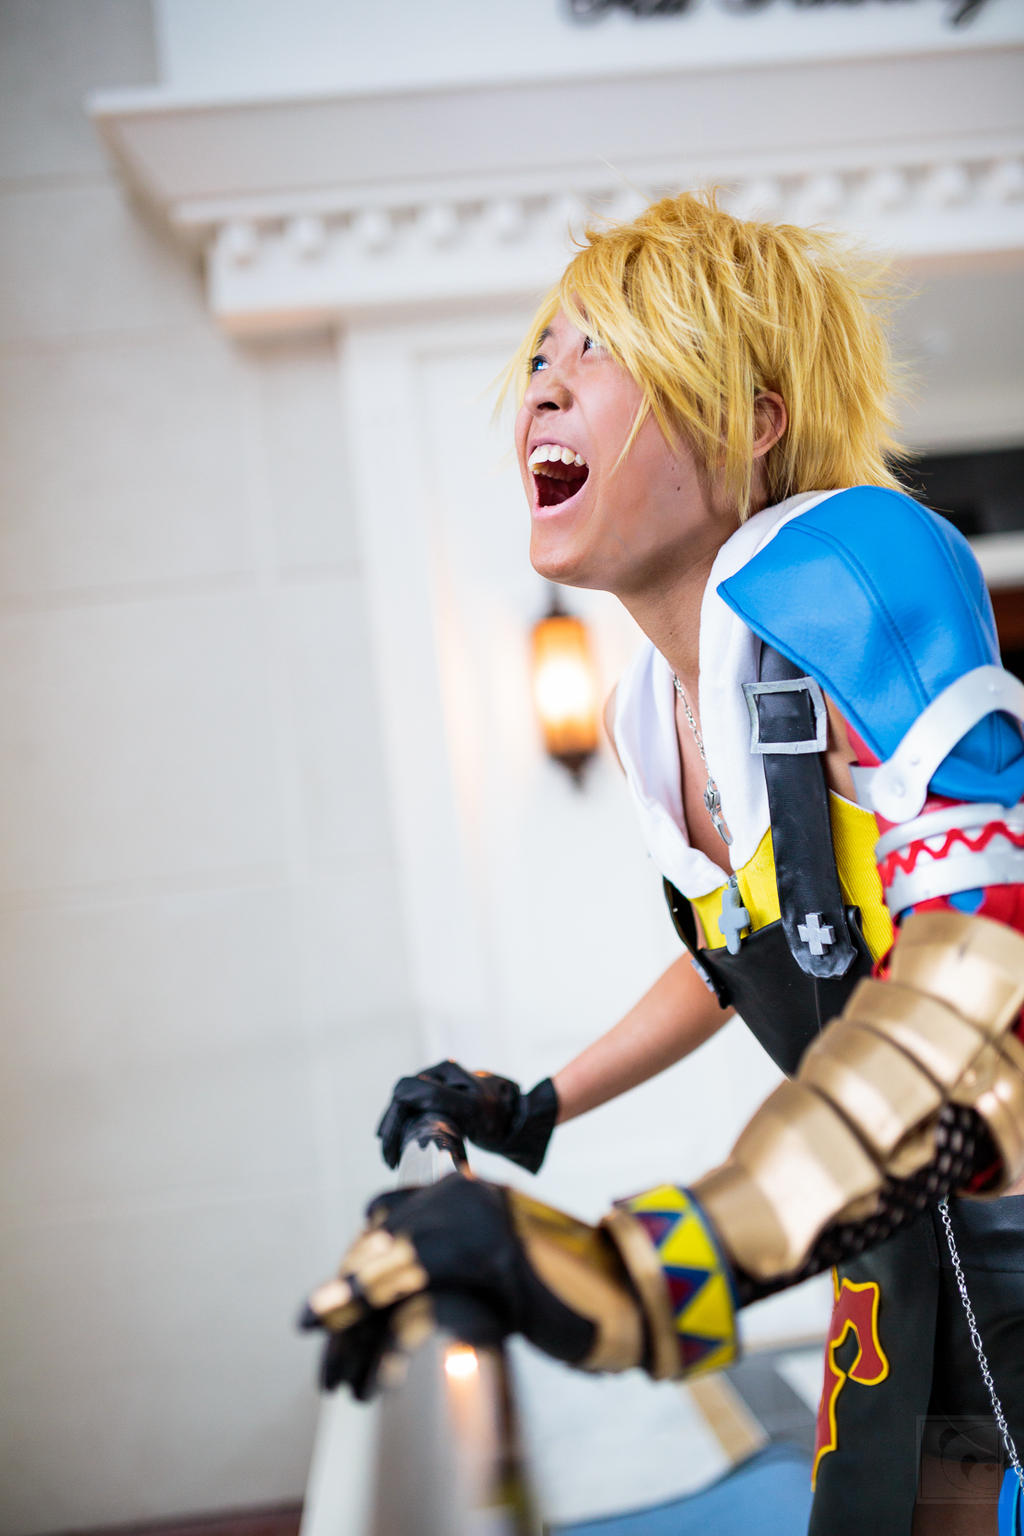 FFX: Tidus 005 by chinasaur